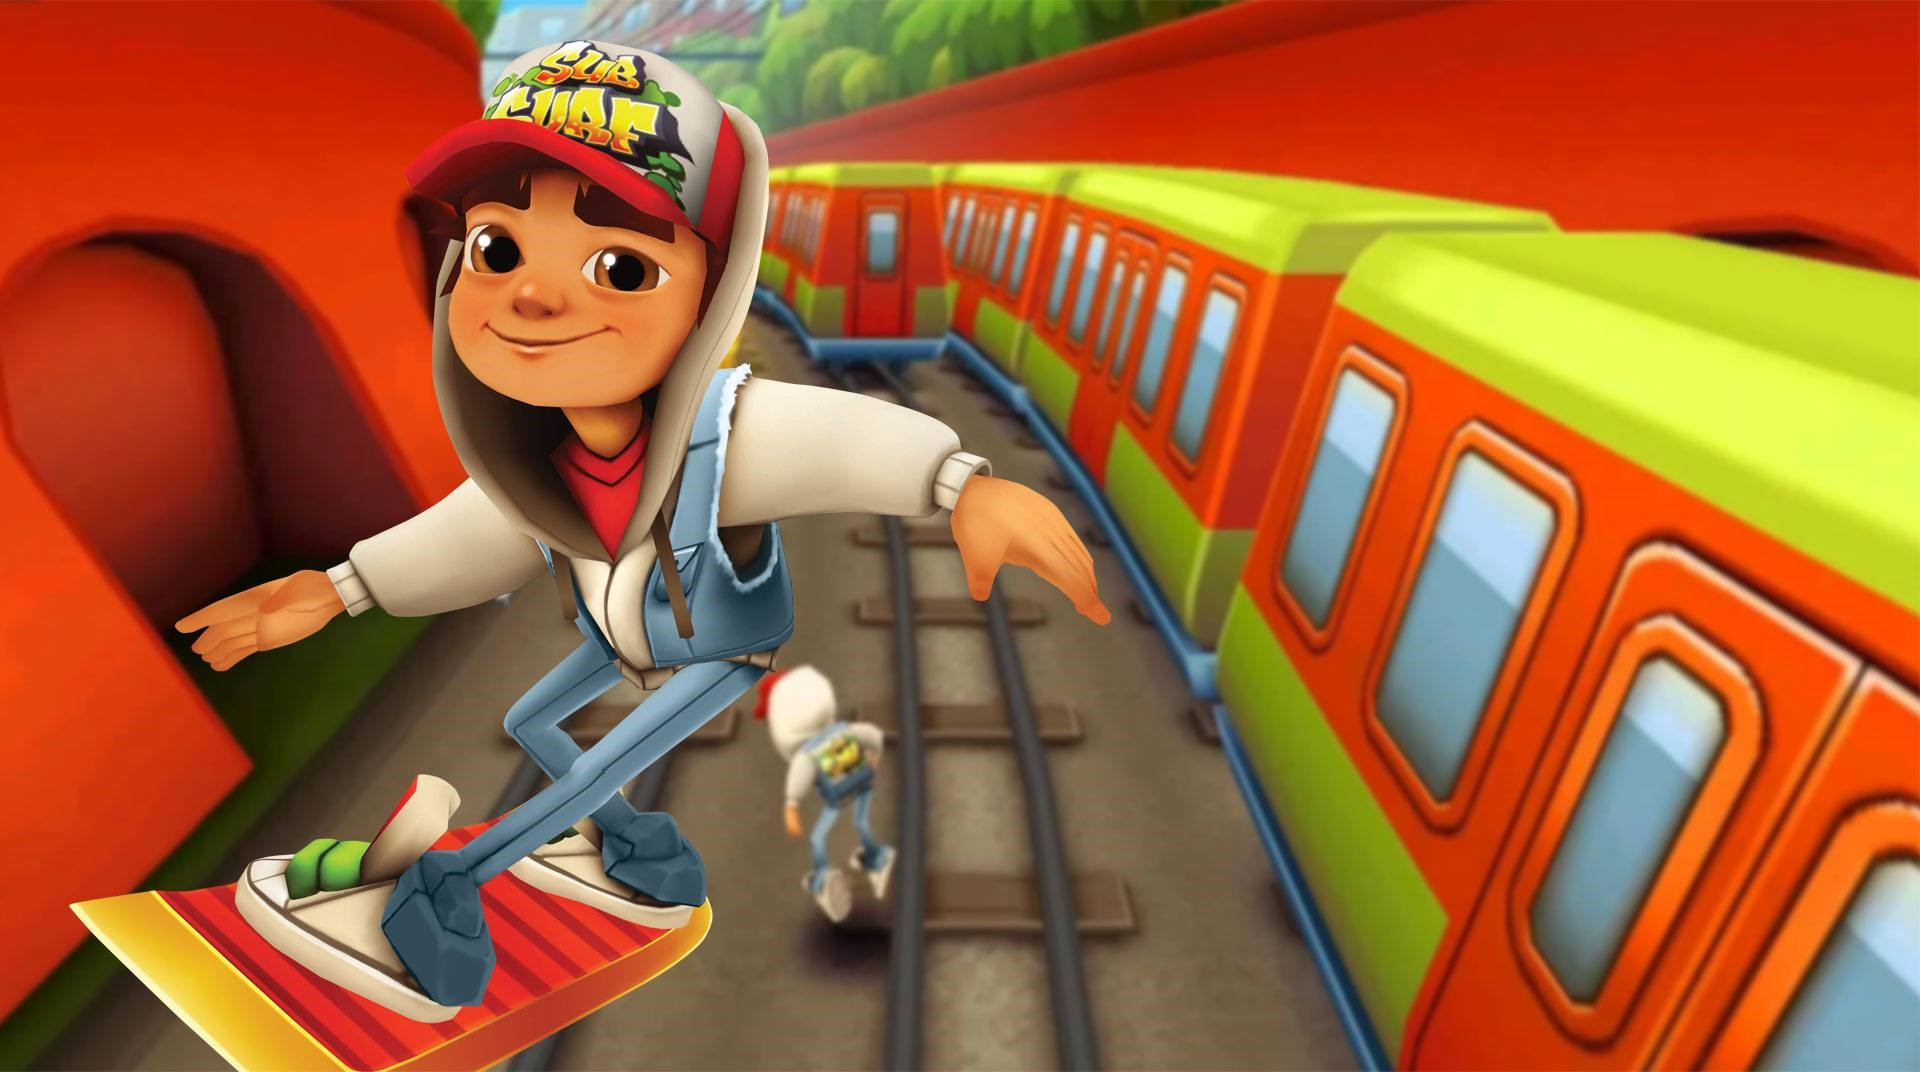 Subway Surfer riding